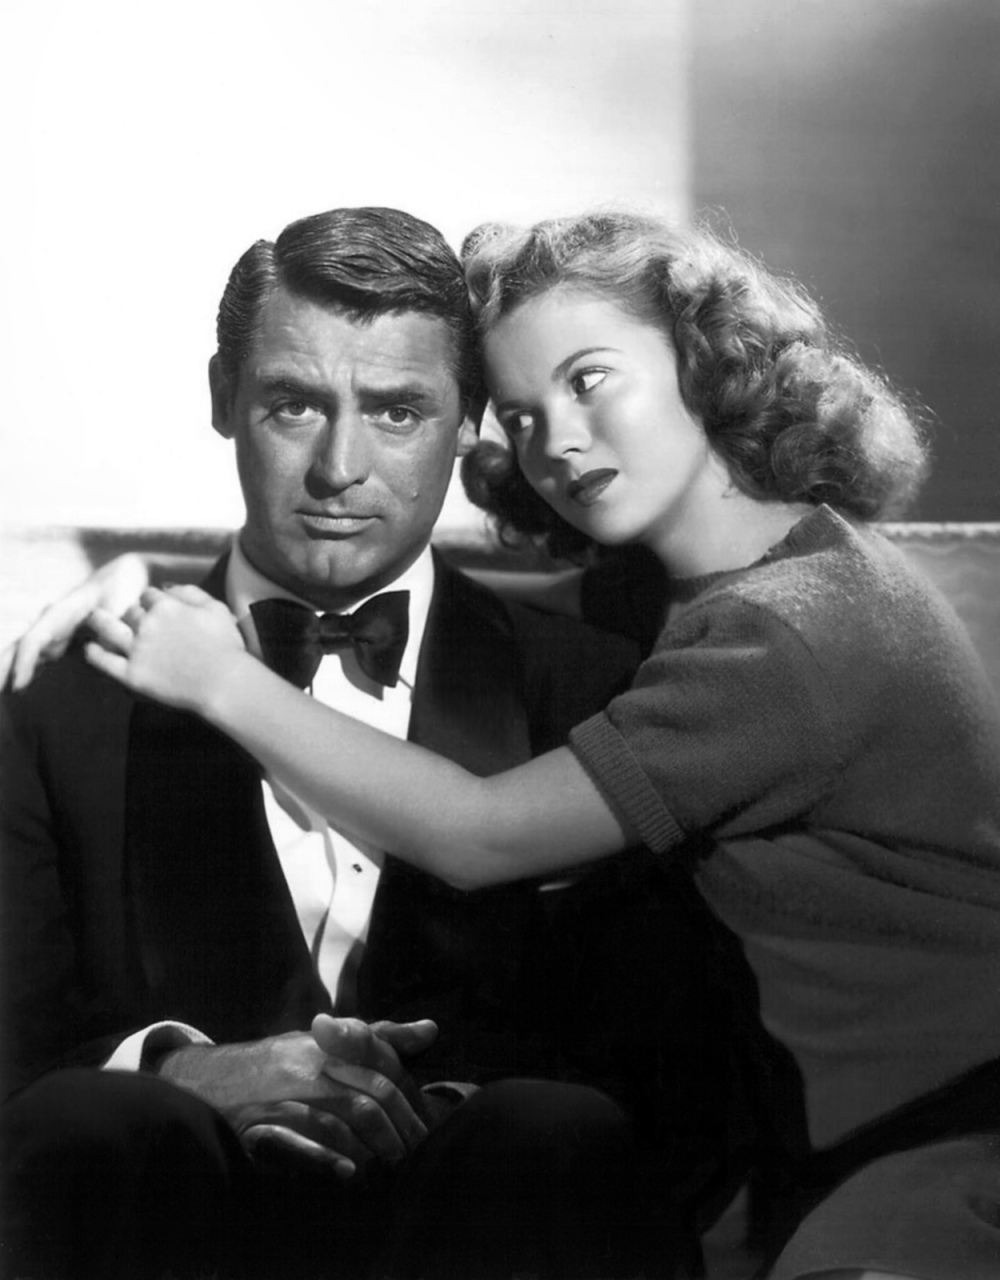 Annex - Grant, Cary (Bachelor and the Bobby-Soxer, The)_01